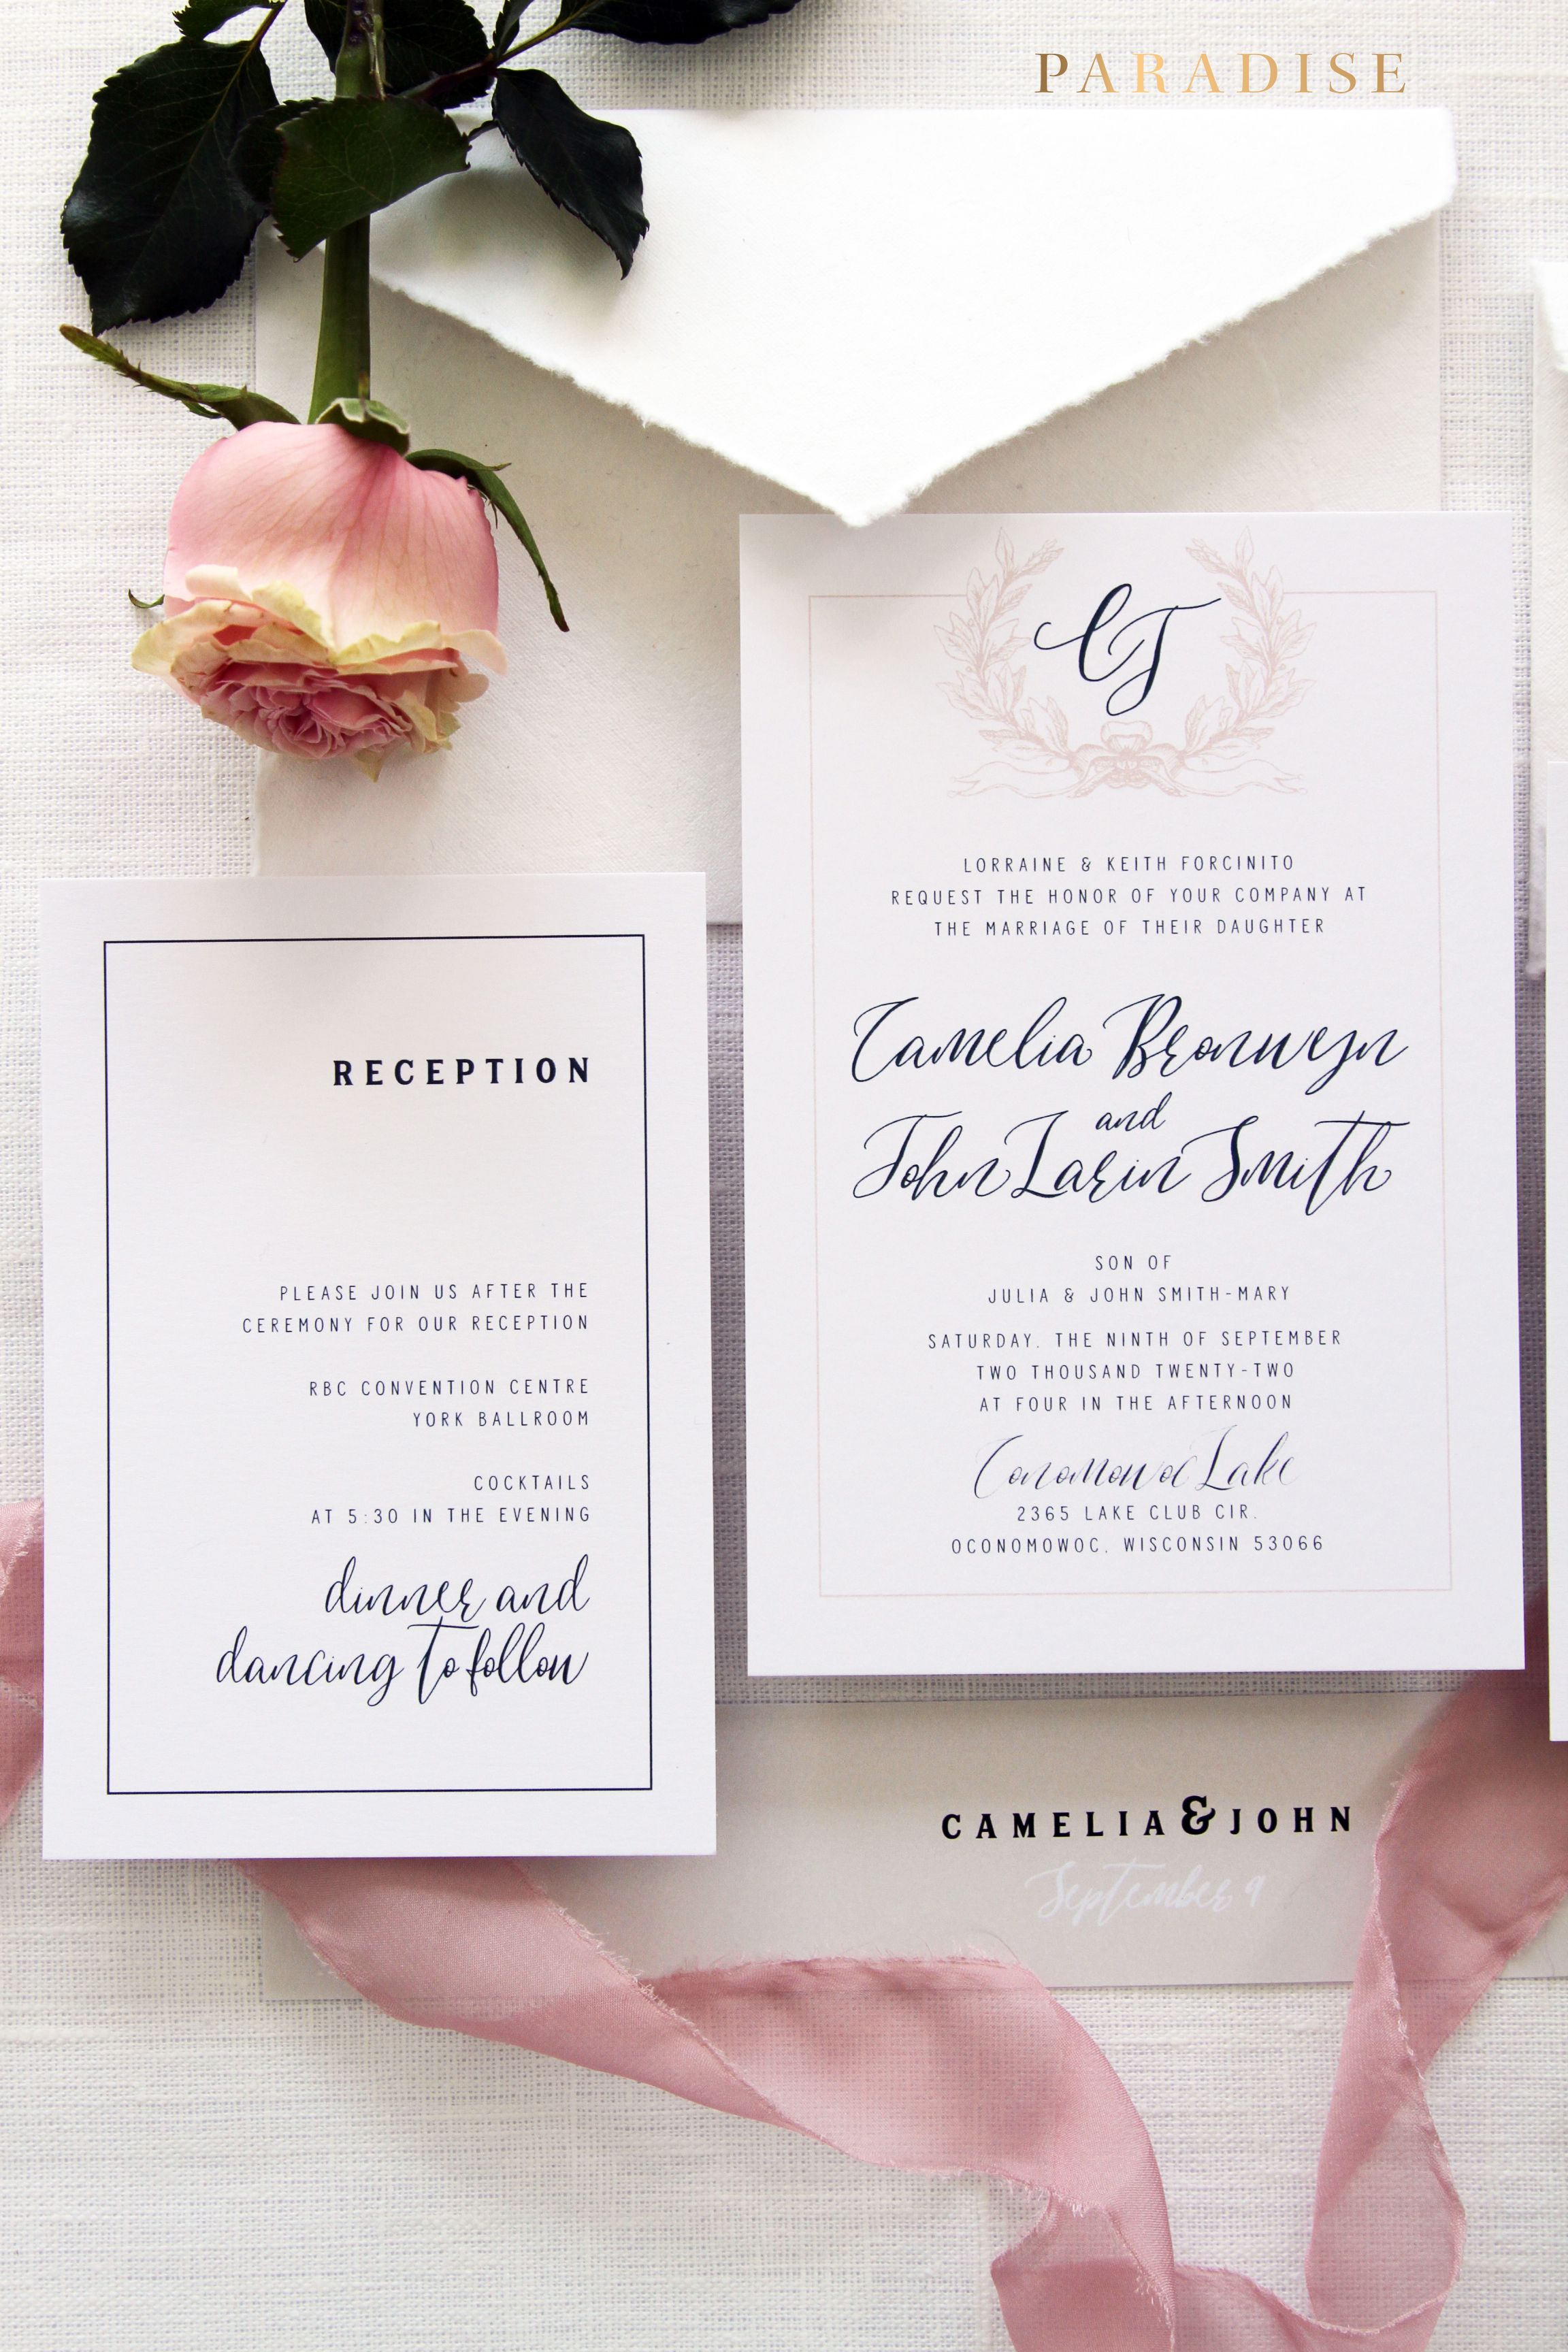 Camelia Wedding Invitation Sets Invitation Set Templates Or - Wedding invitation set templates